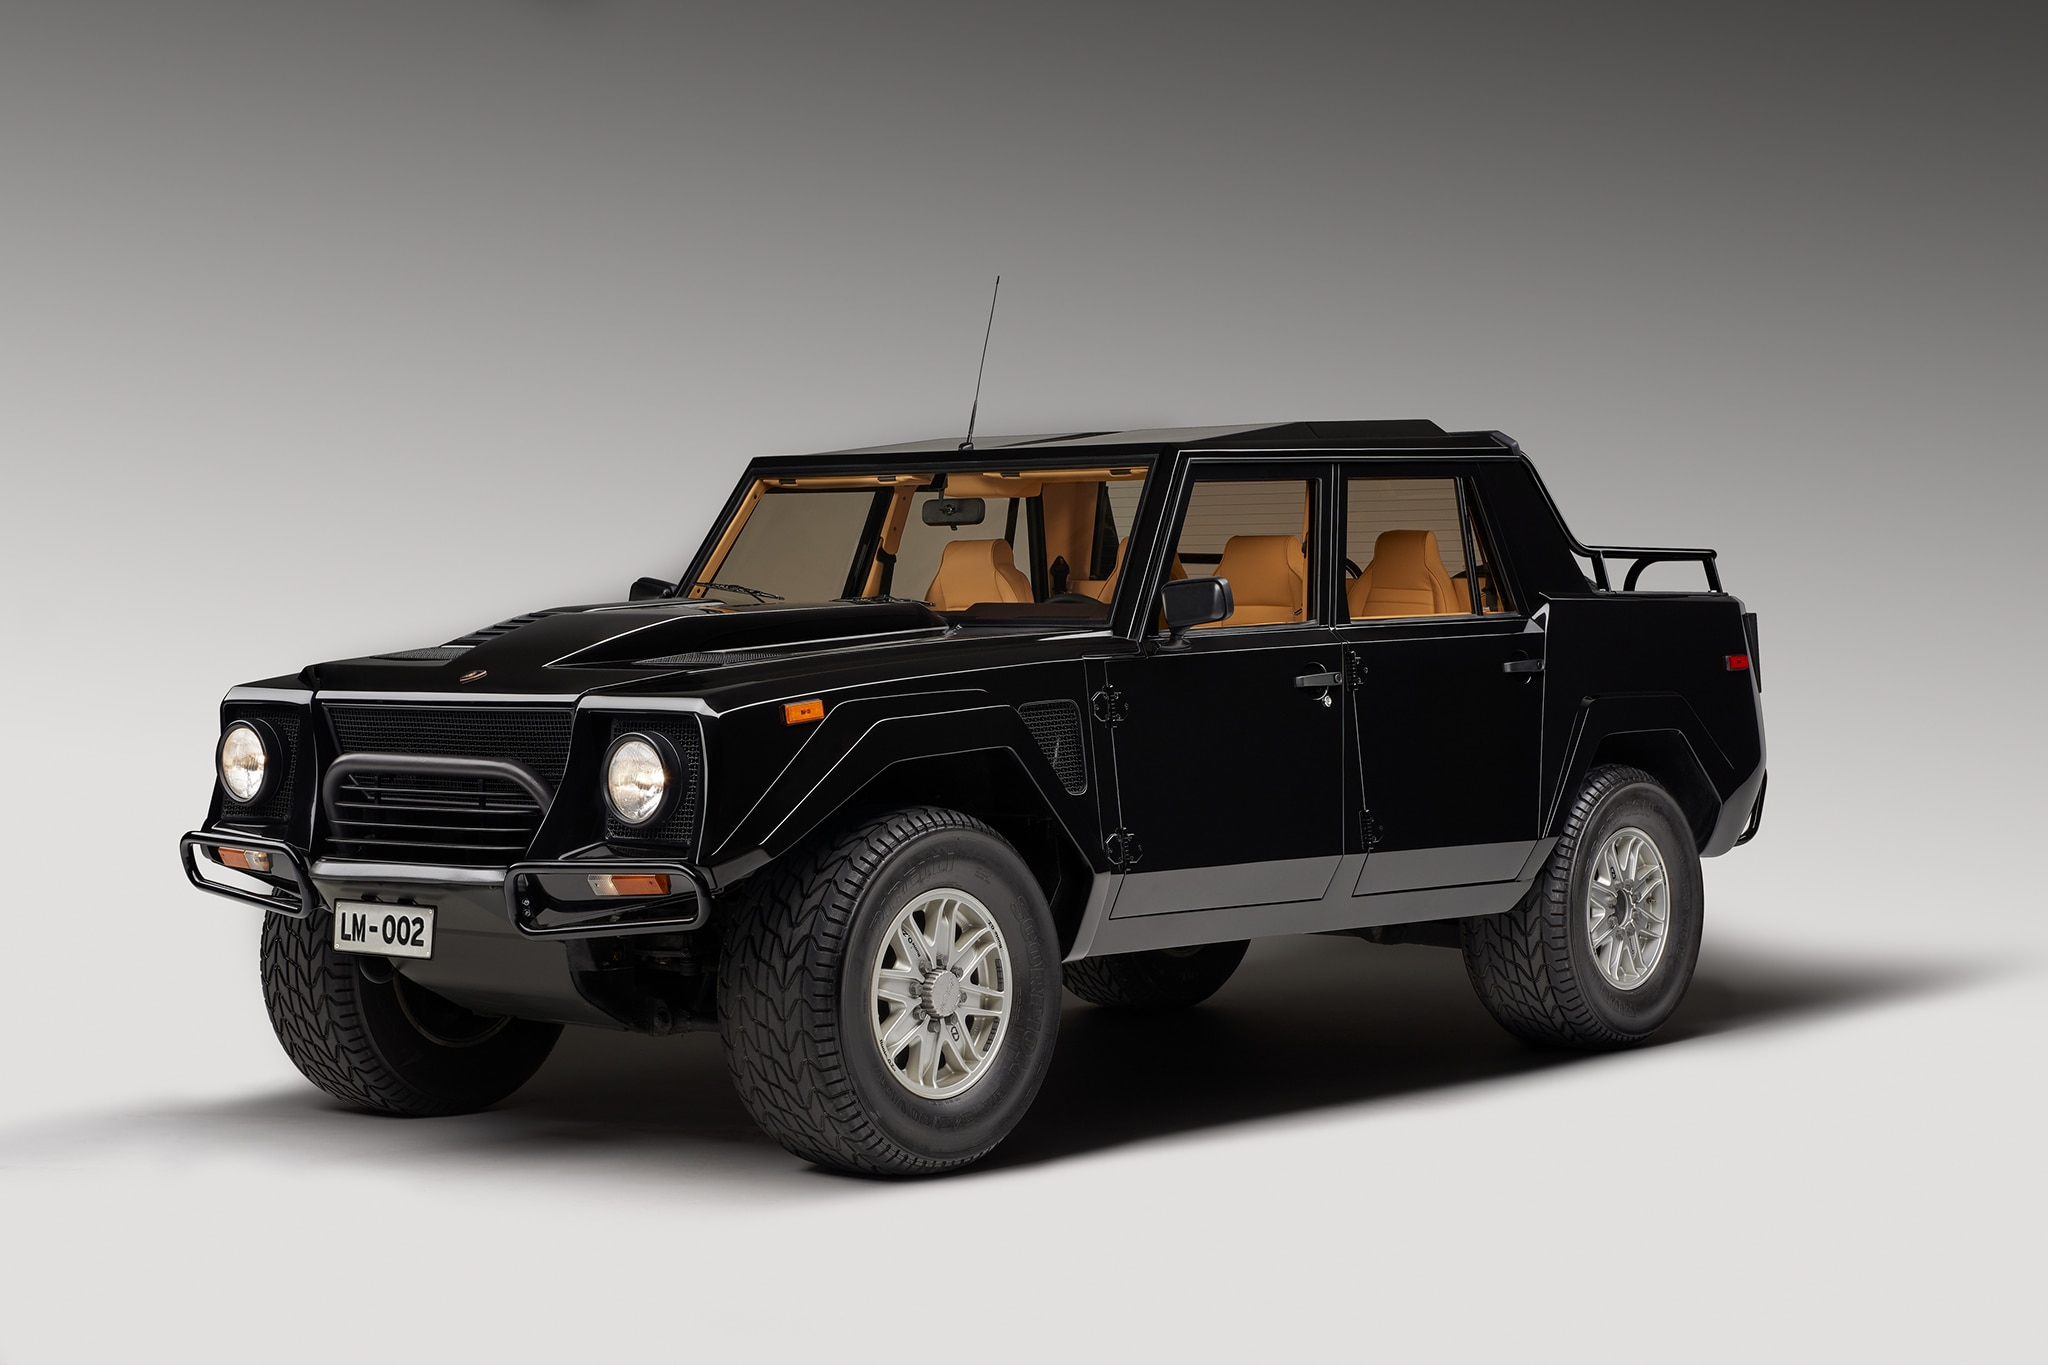 Lamborghini Price 2017 >> 1986-1993 Lamborghini LM002 - Luxury SUV Review - Automobile Magazine